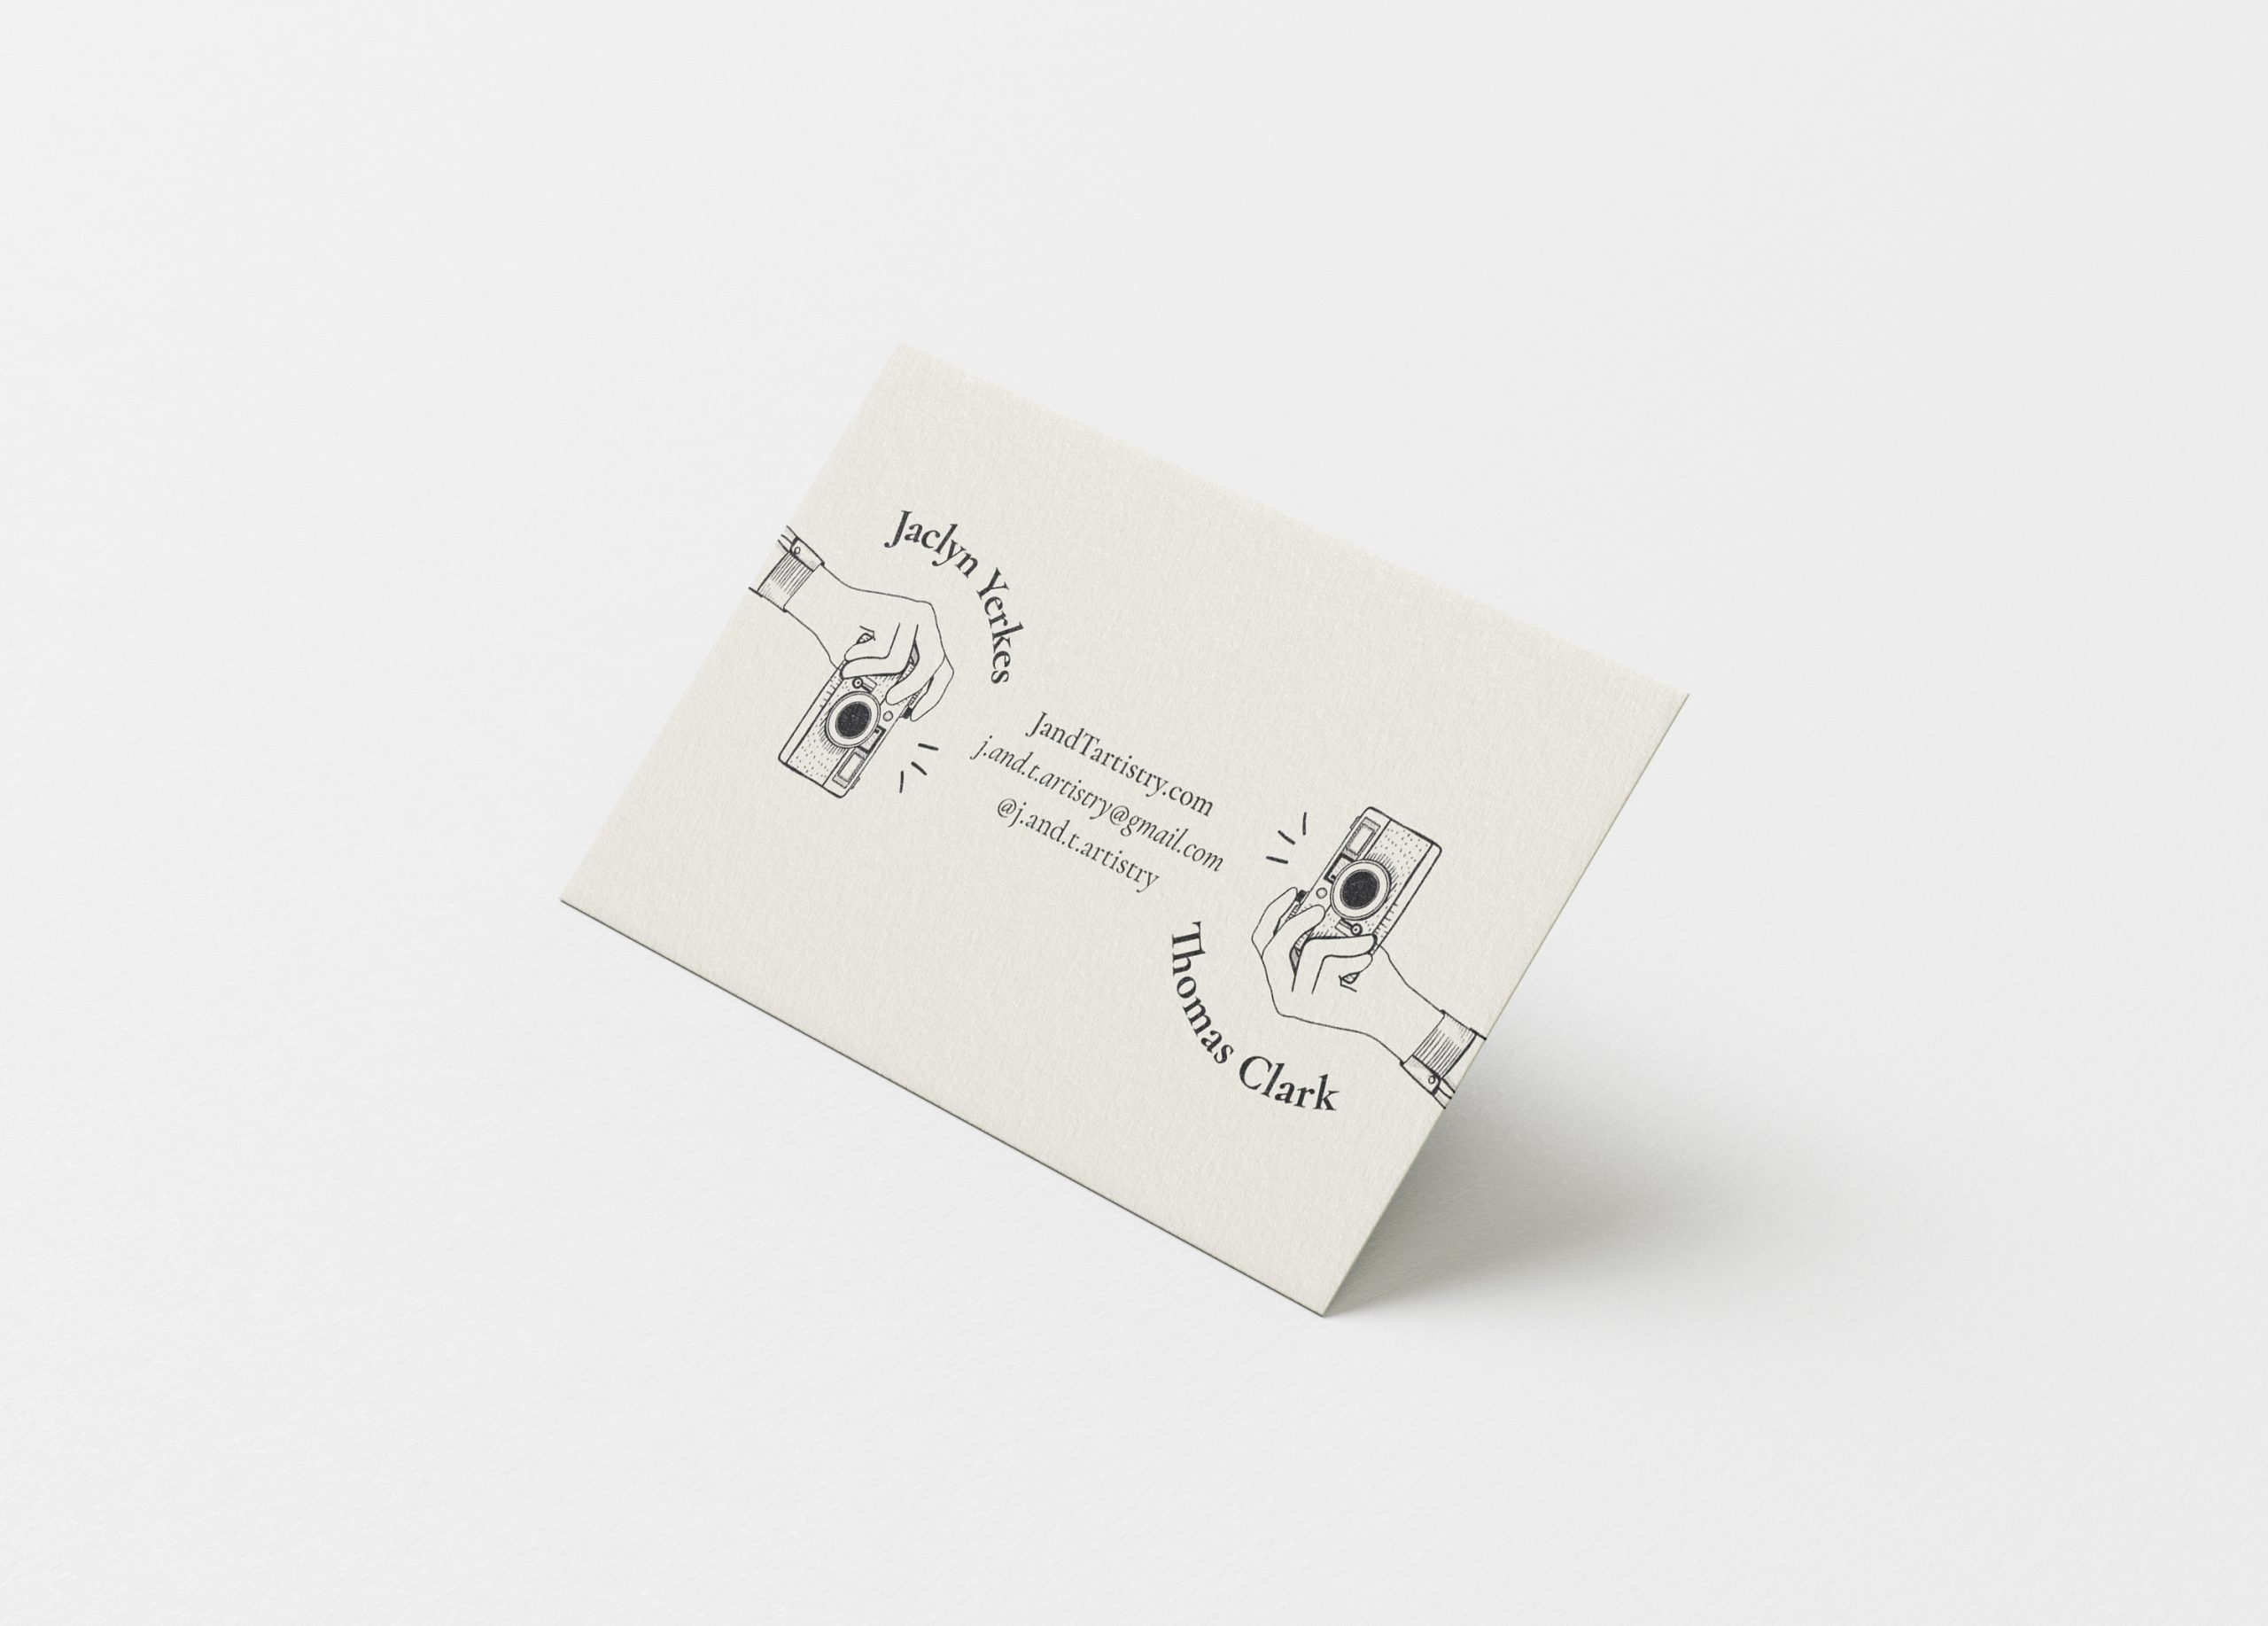 J and T Artistry business card_1